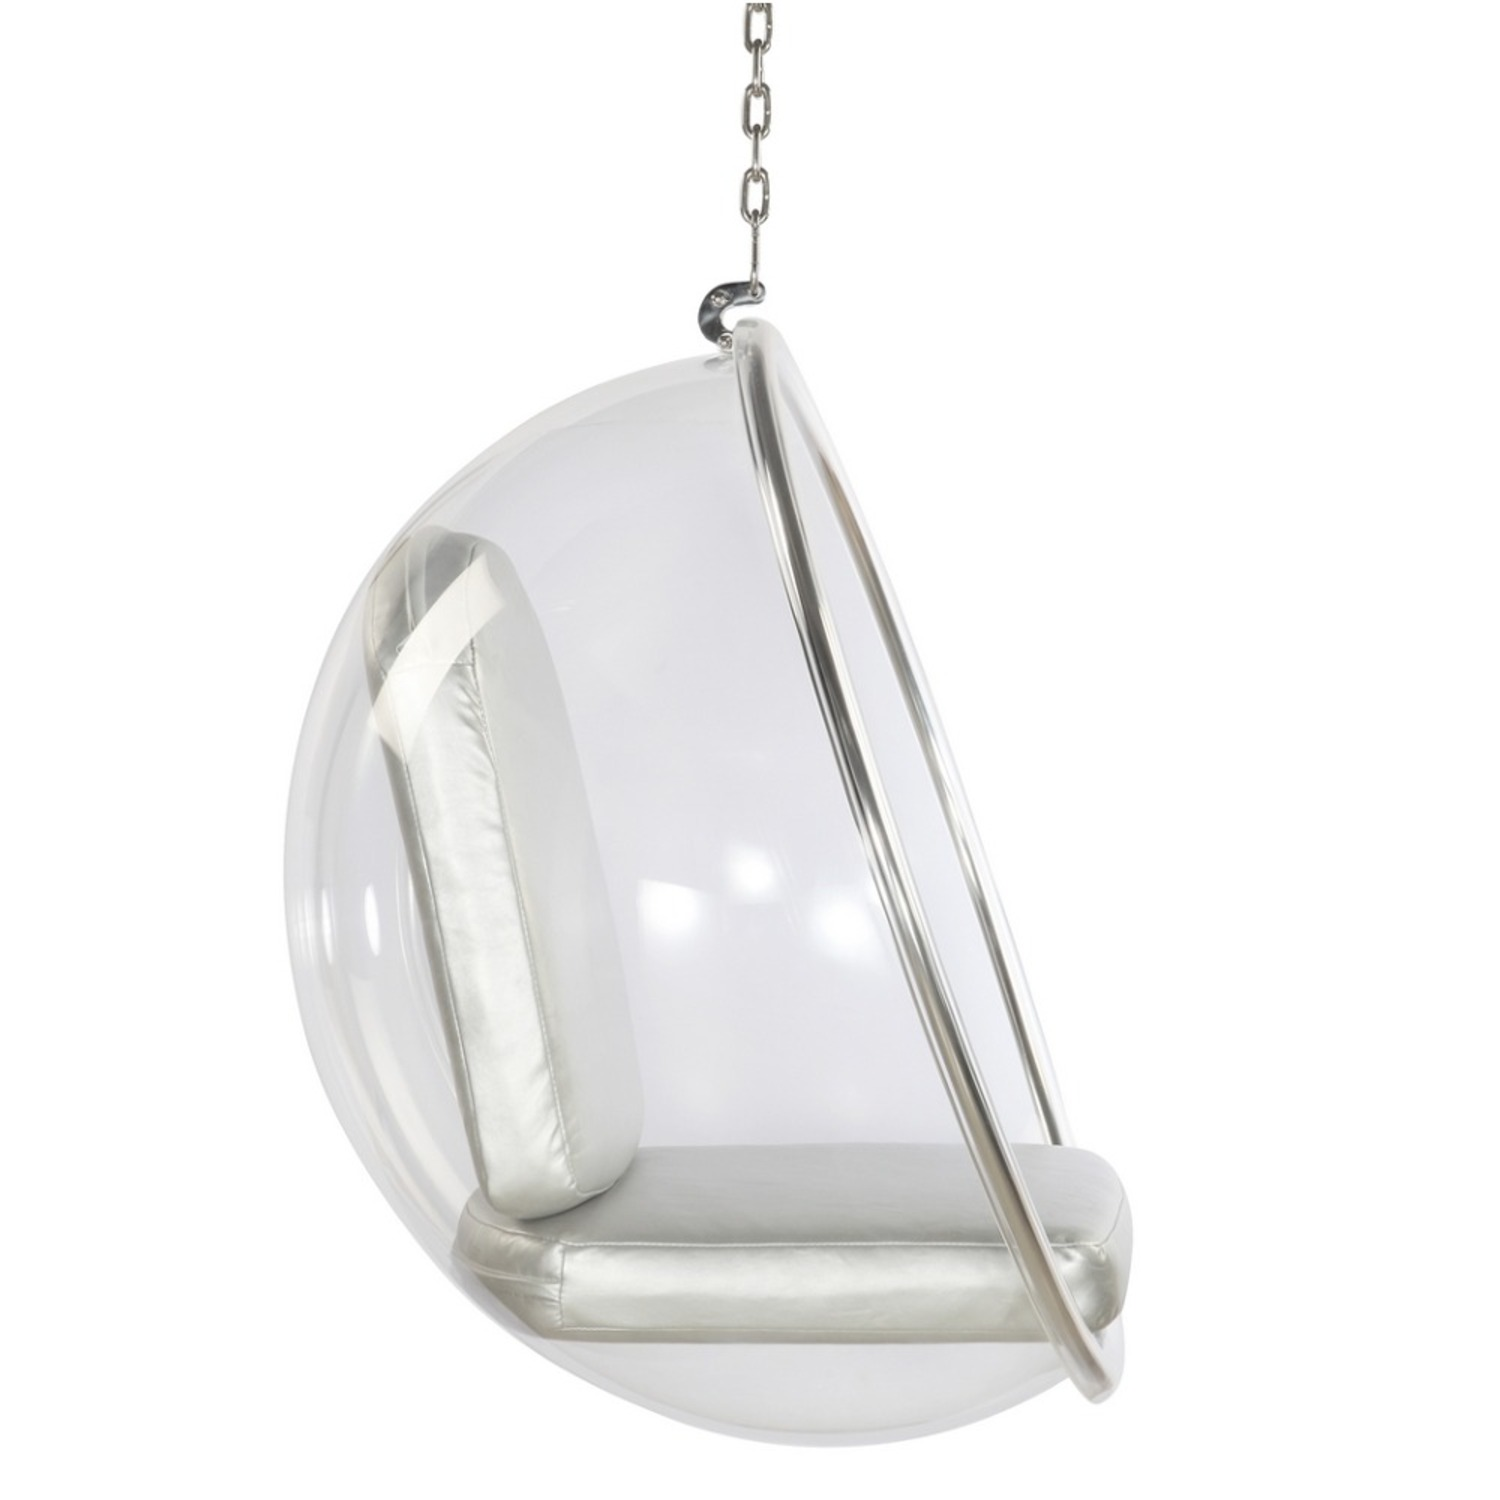 Hanging Chair In Clear Acrylic & Silver PU Leather - image-1